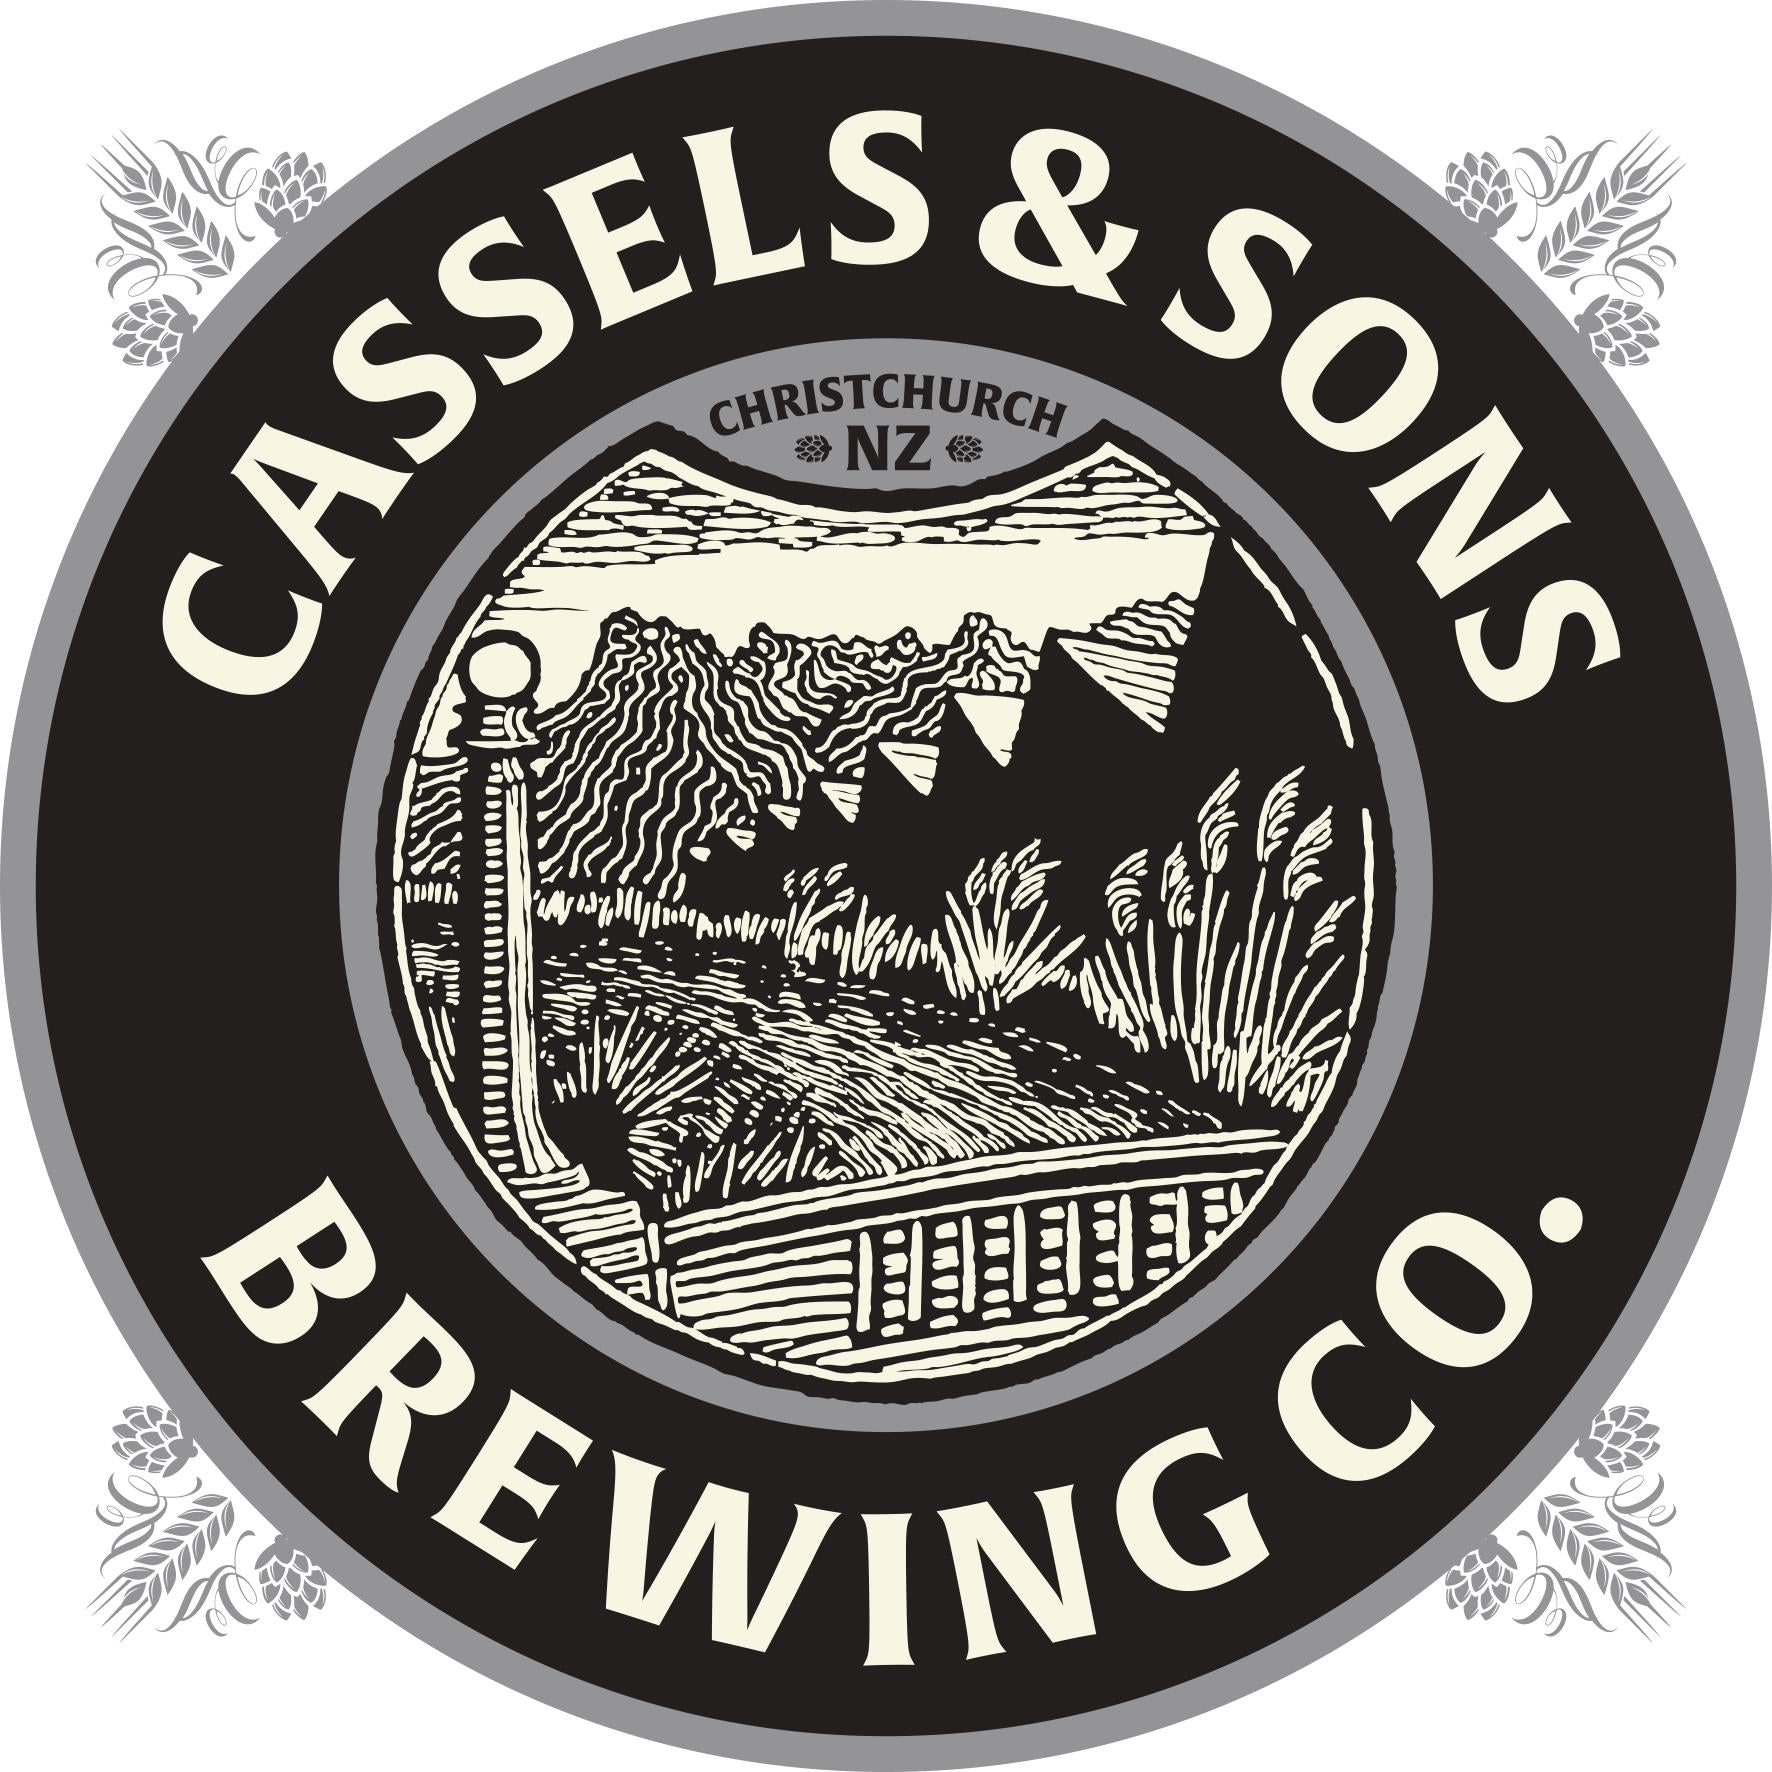 Cassels & Sons